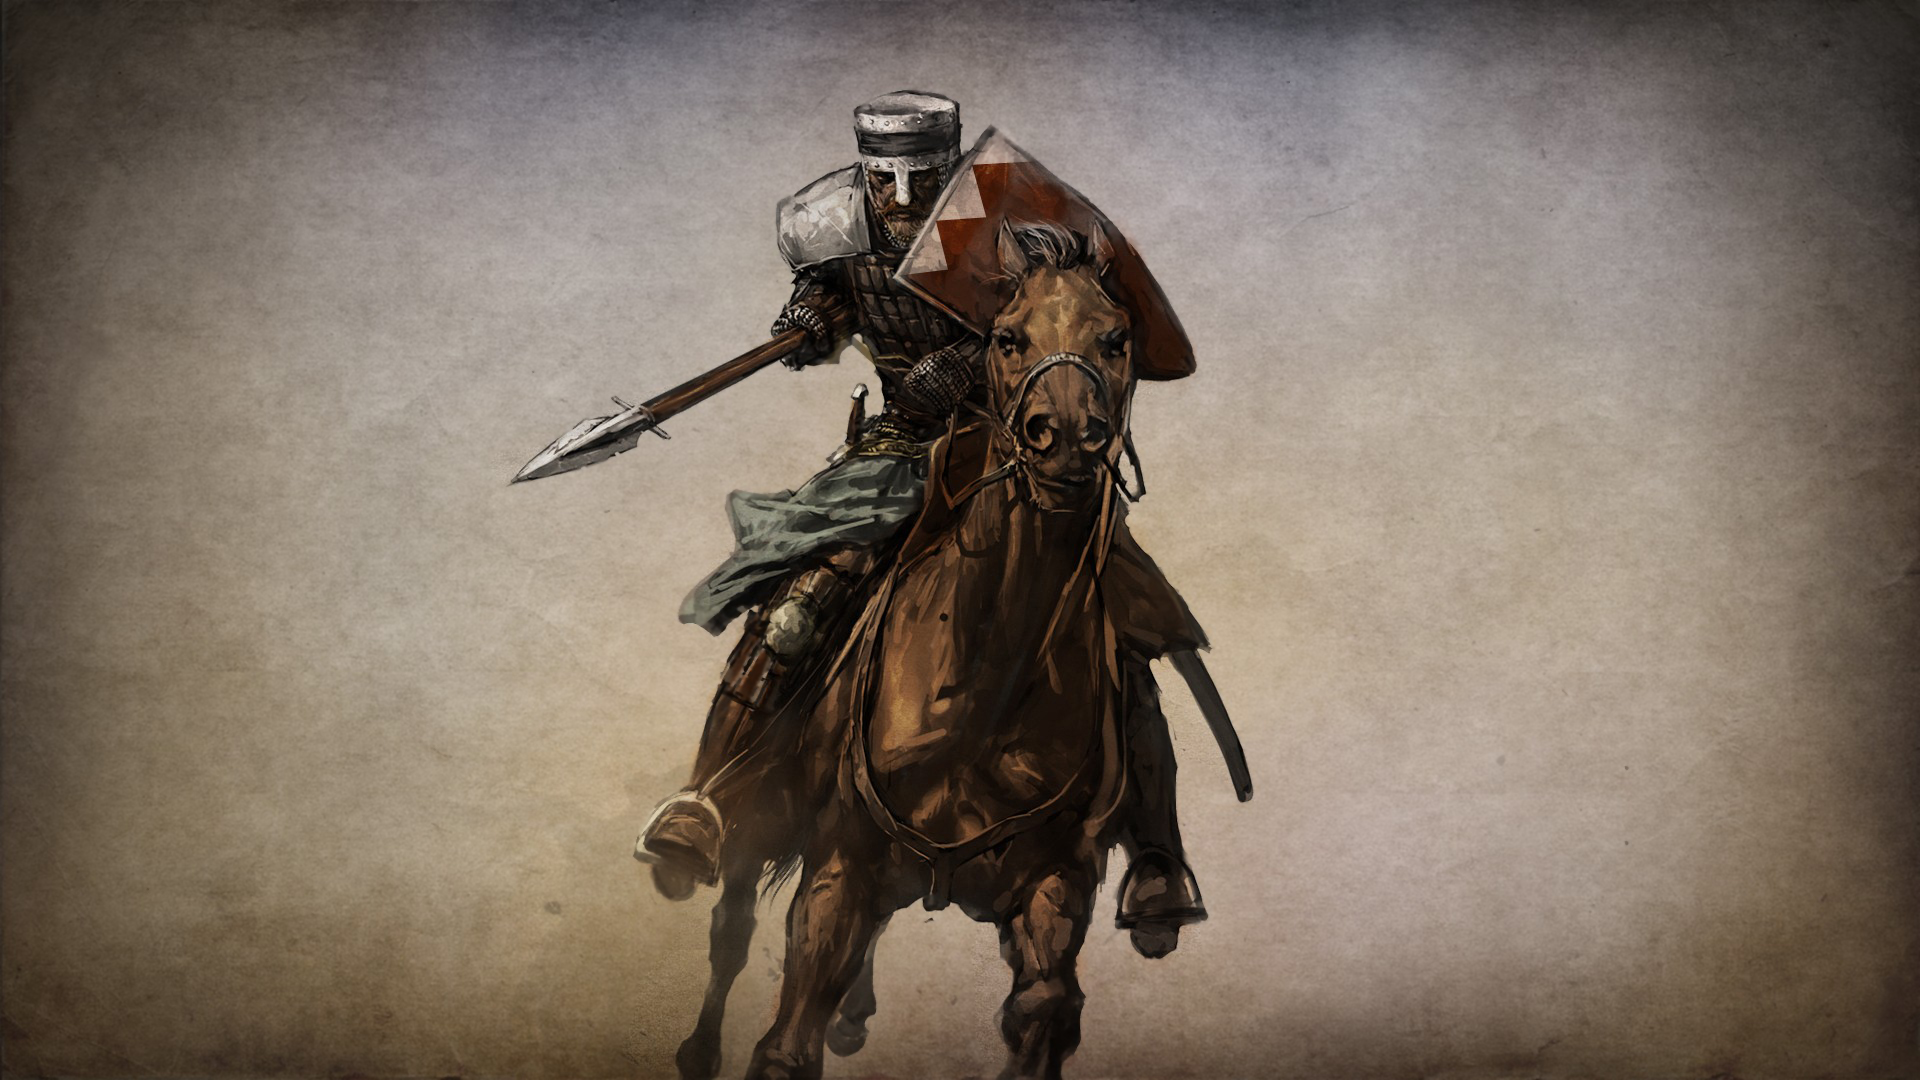 Mount and blade warrior